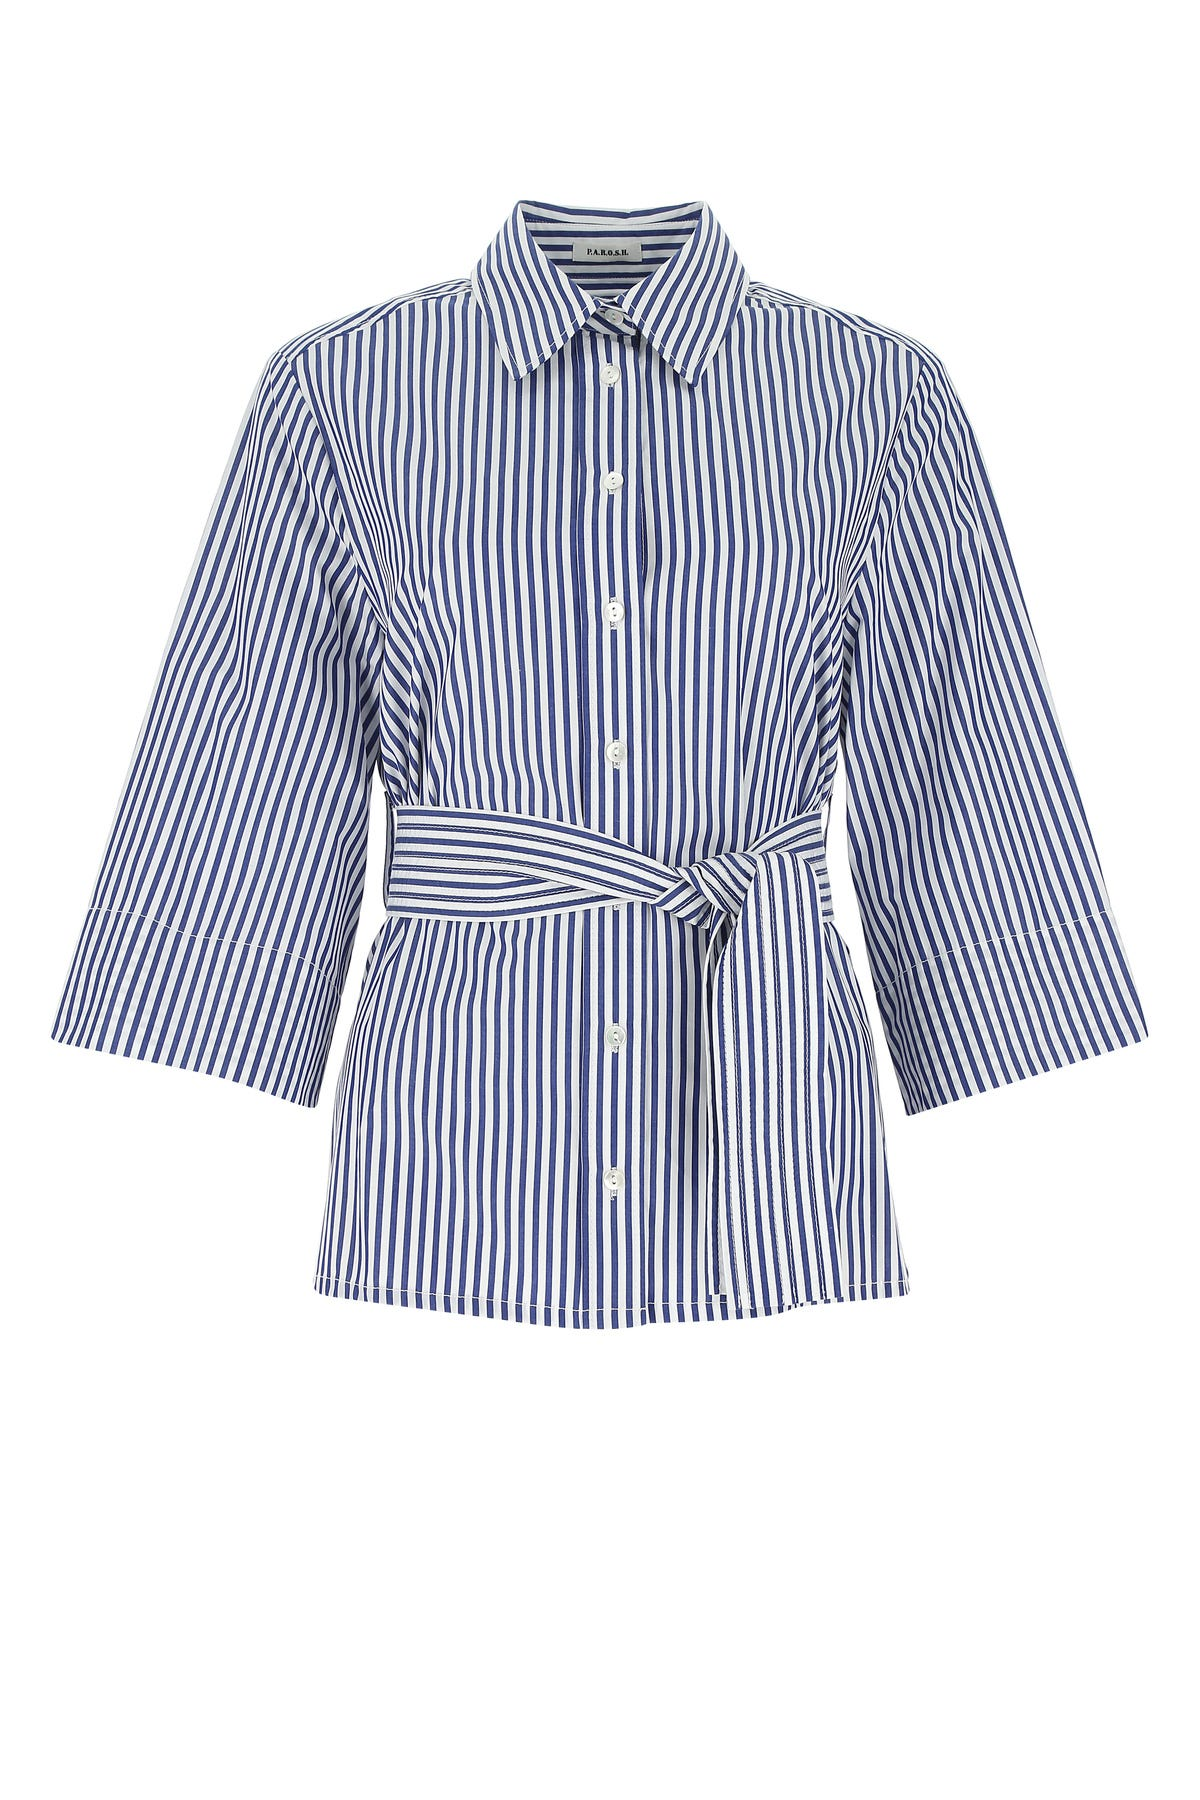 P.a.r.o.s.h. Tops EMBROIDERED POPLIN CLACX SHIRT  STRIPPED PAROSH DONNA S